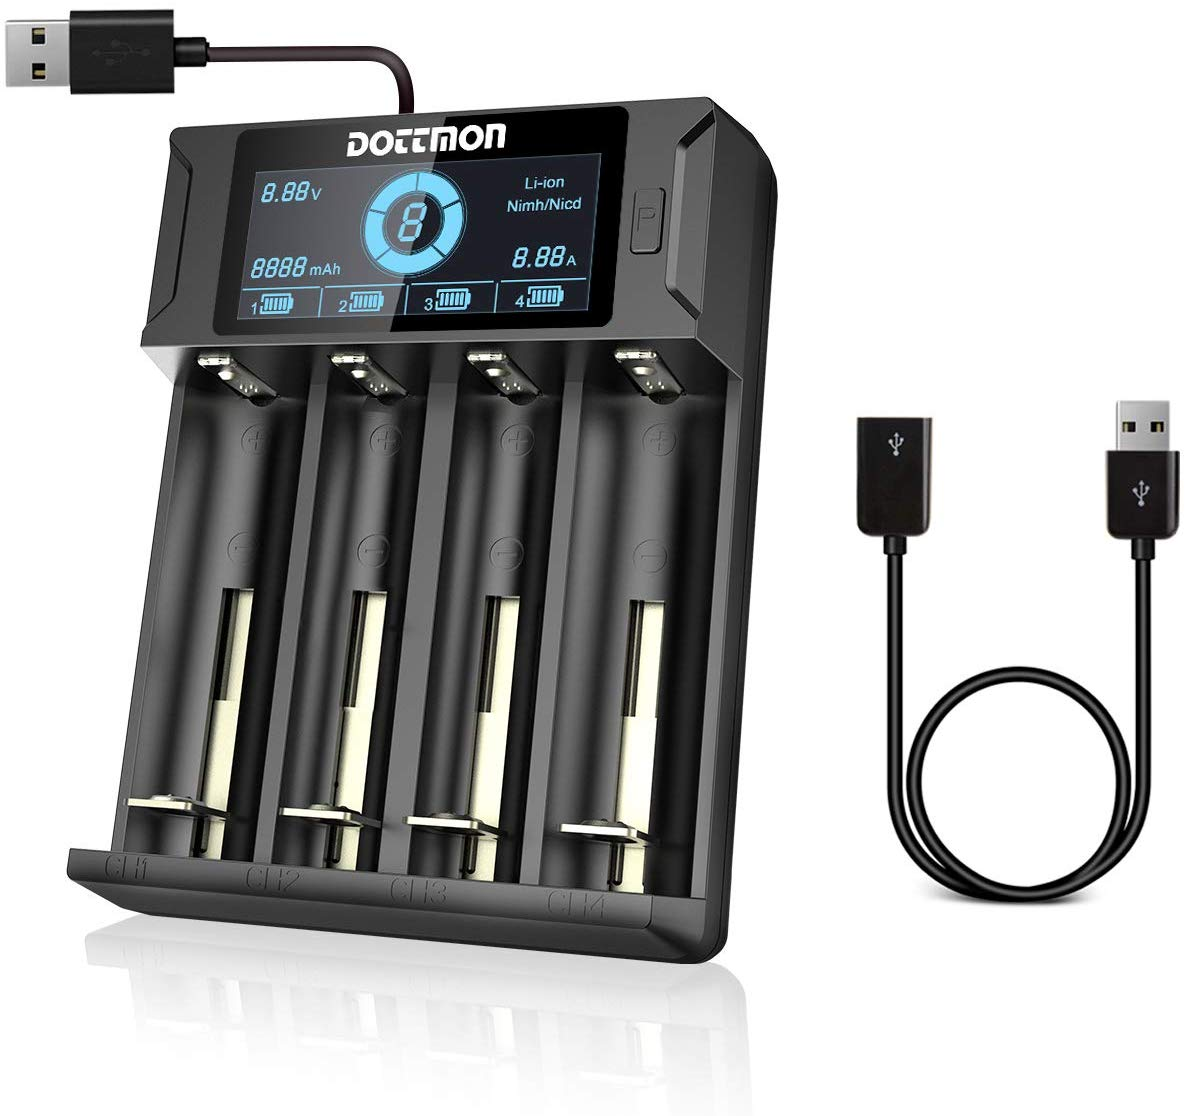 DOTTMON LCD Smart Universal Battery Charger 4 Bay | Best Rechargeable AA Battery